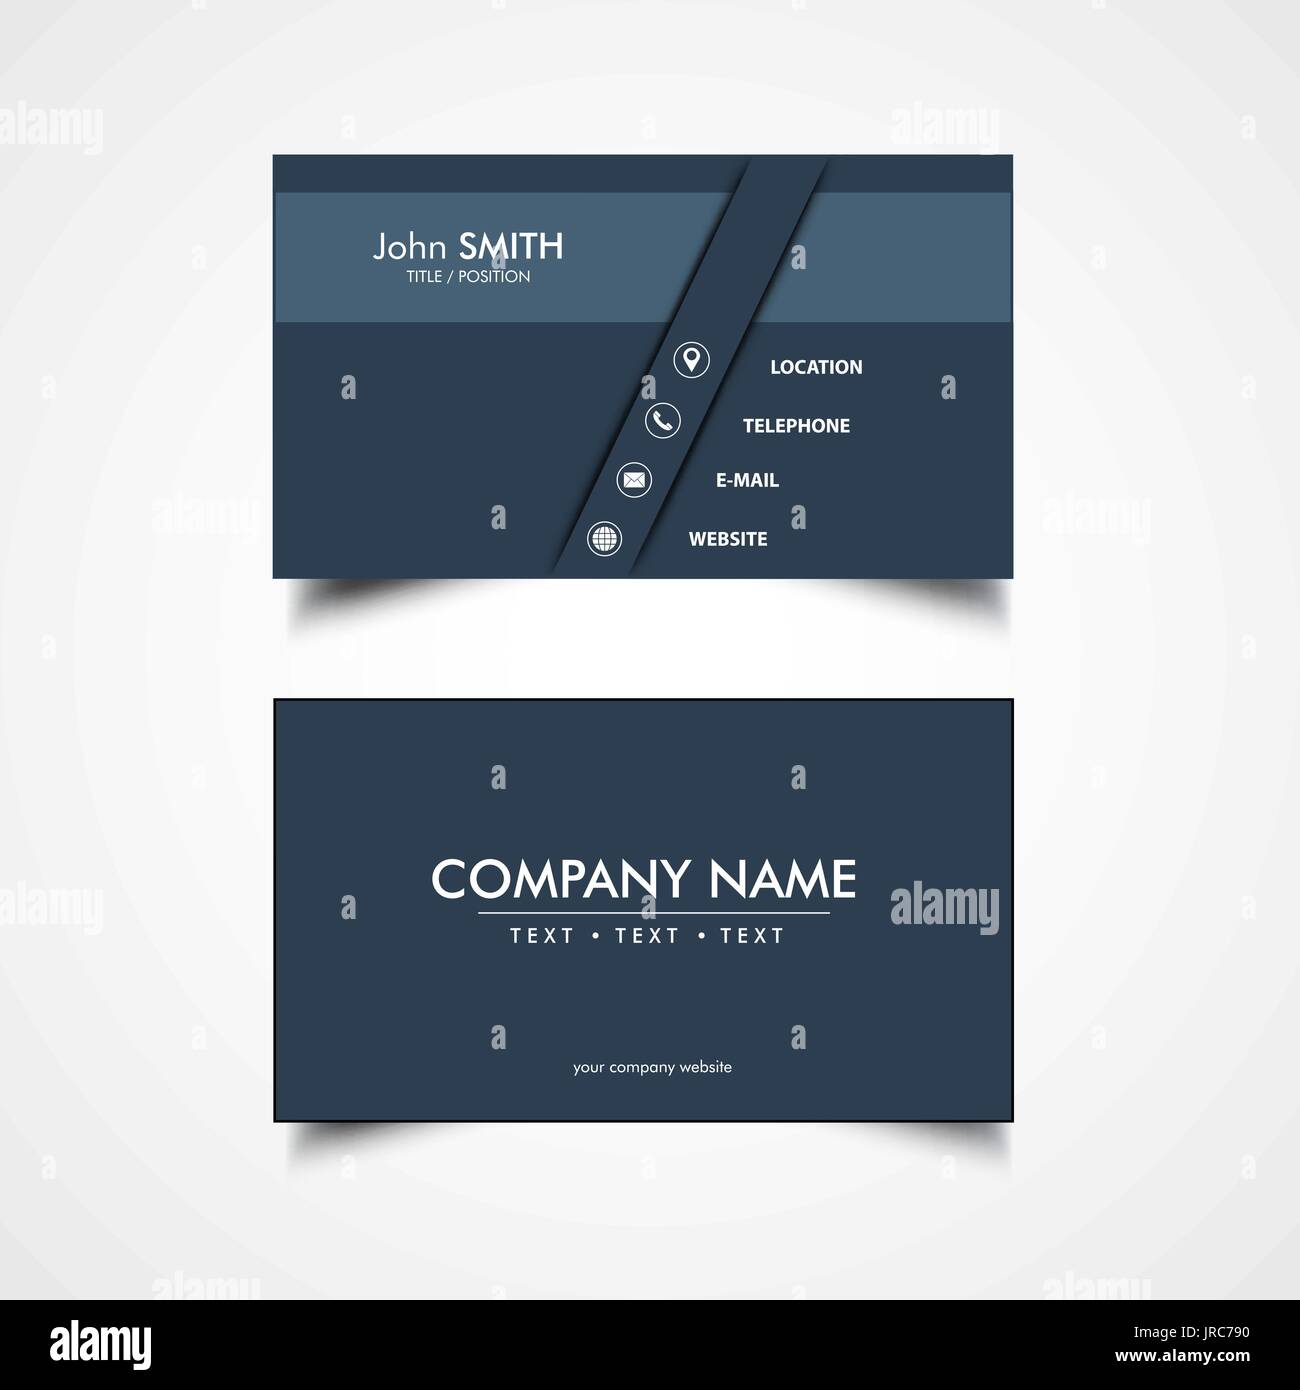 Simple Business Card Template Vector Illustration